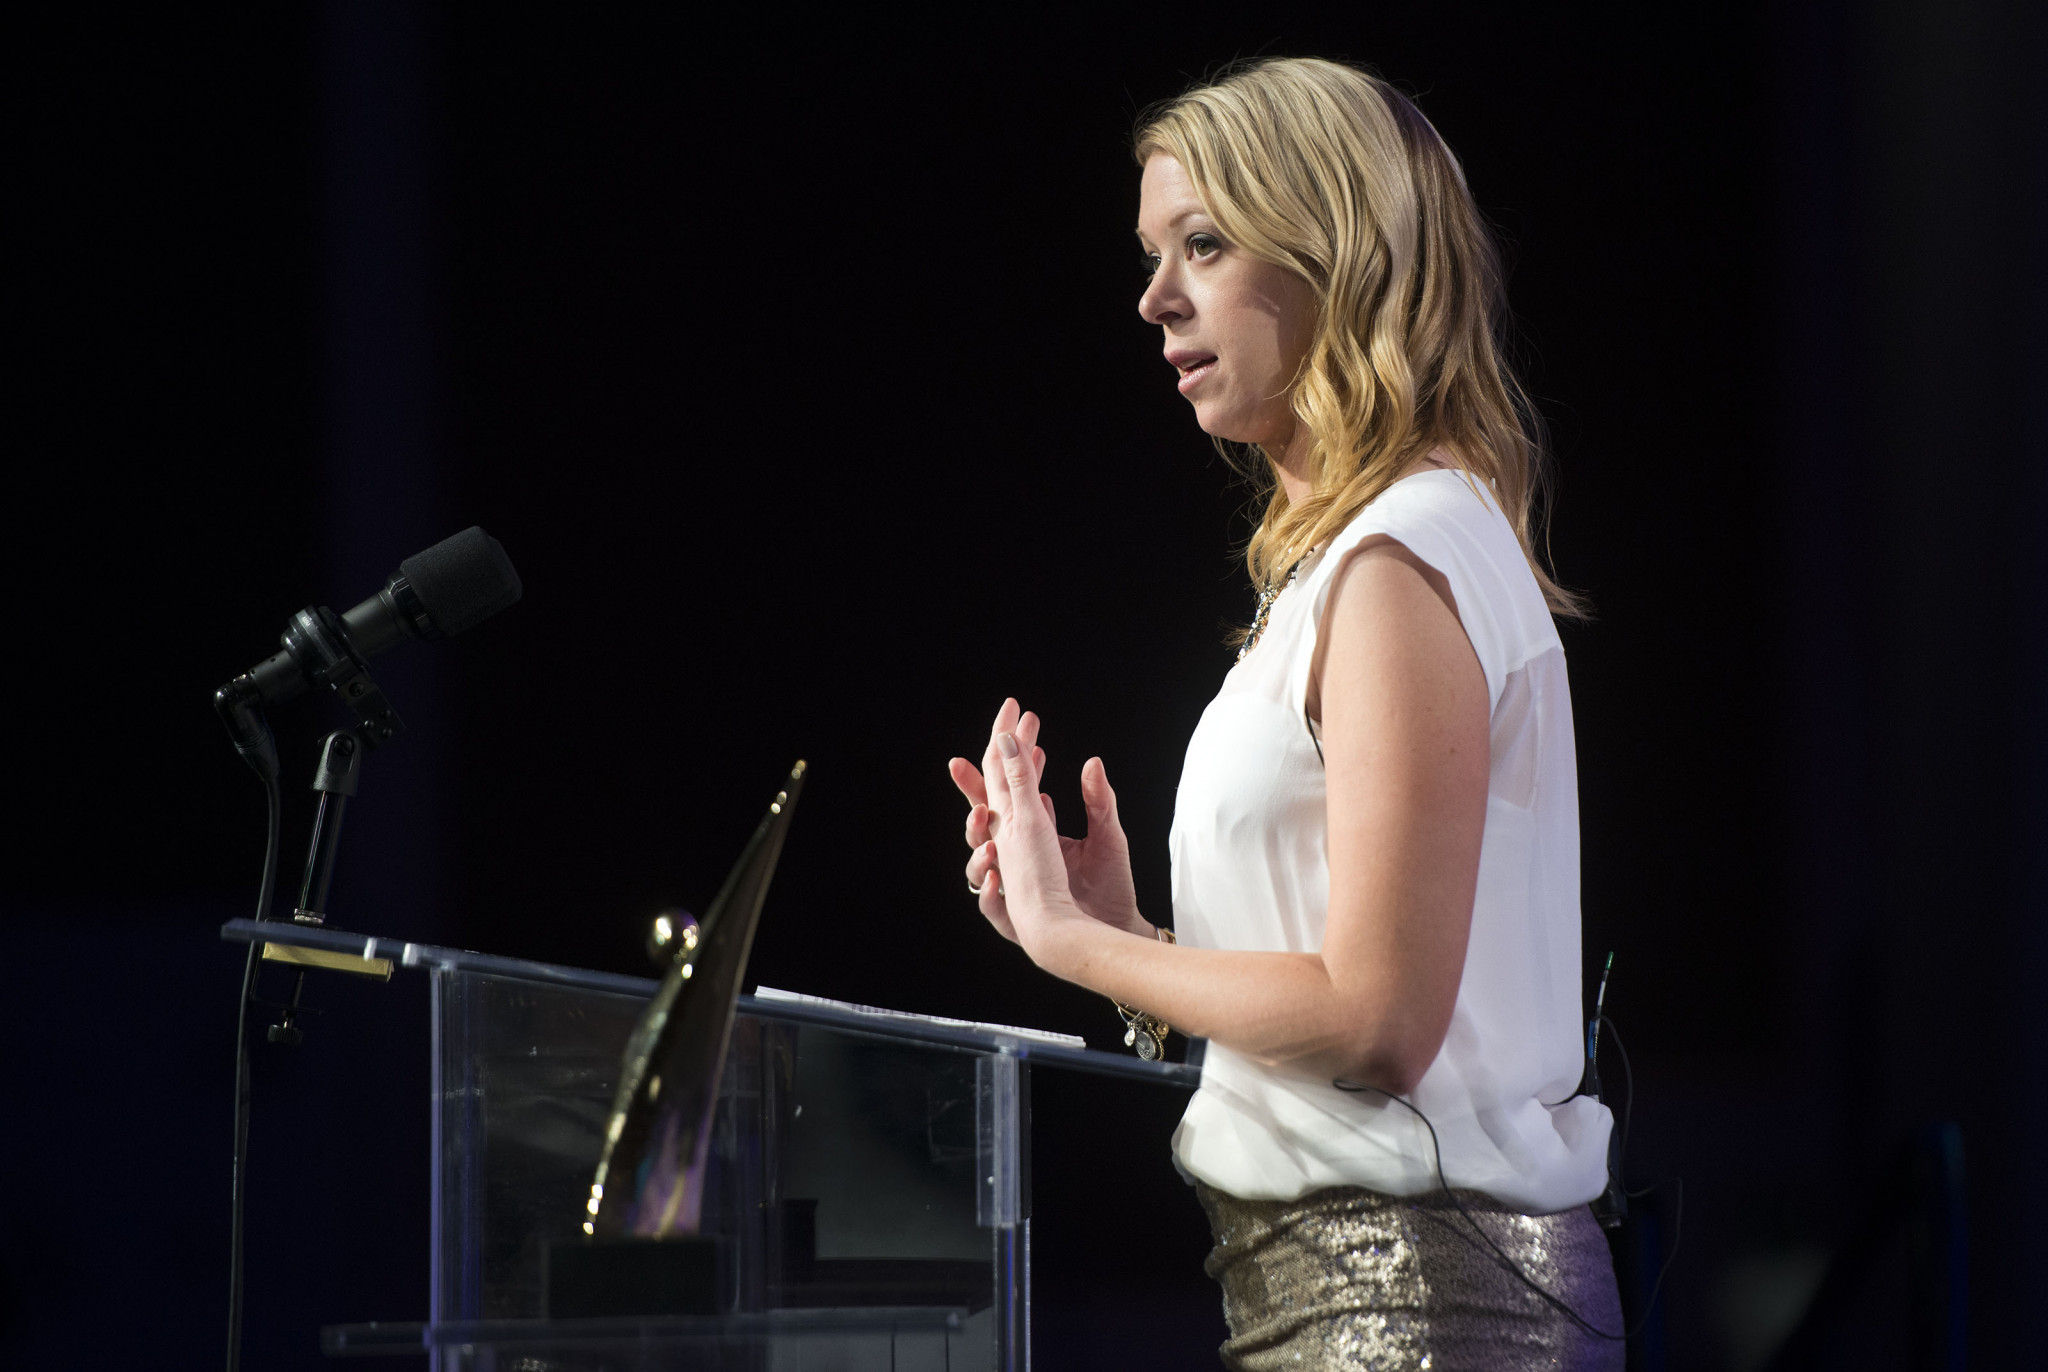 Adrianne Haslet, who lost a leg in the Boston Marathon bombings in 2013, is expected to be involved in planning the new Para athletics division ©Getty Images